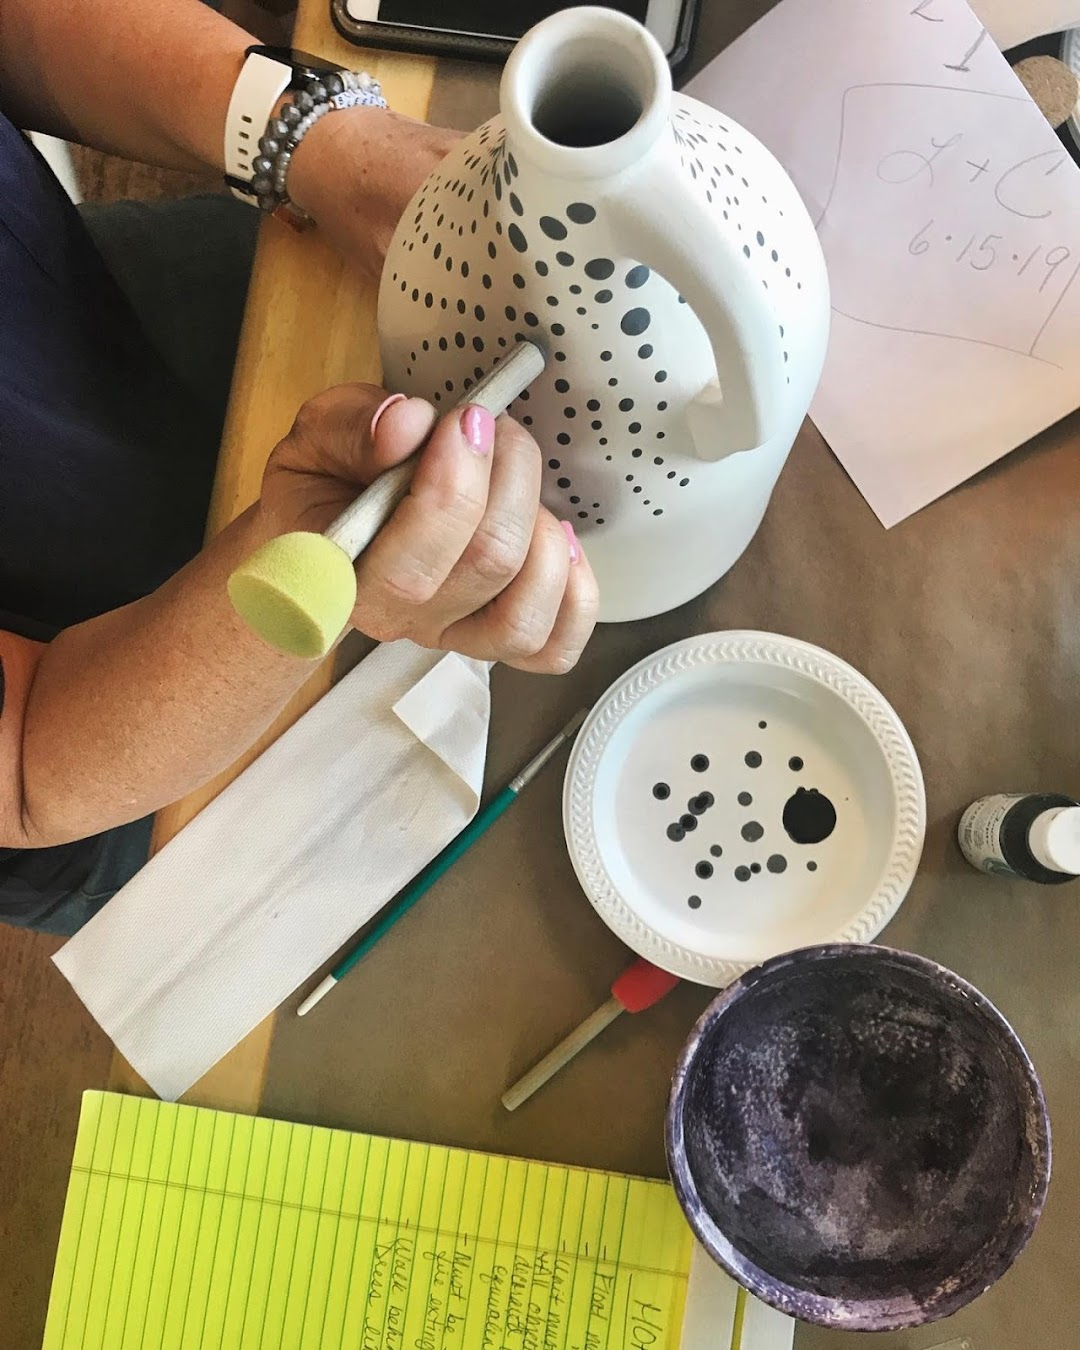 Handz On Art - Paint Your Own Pottery